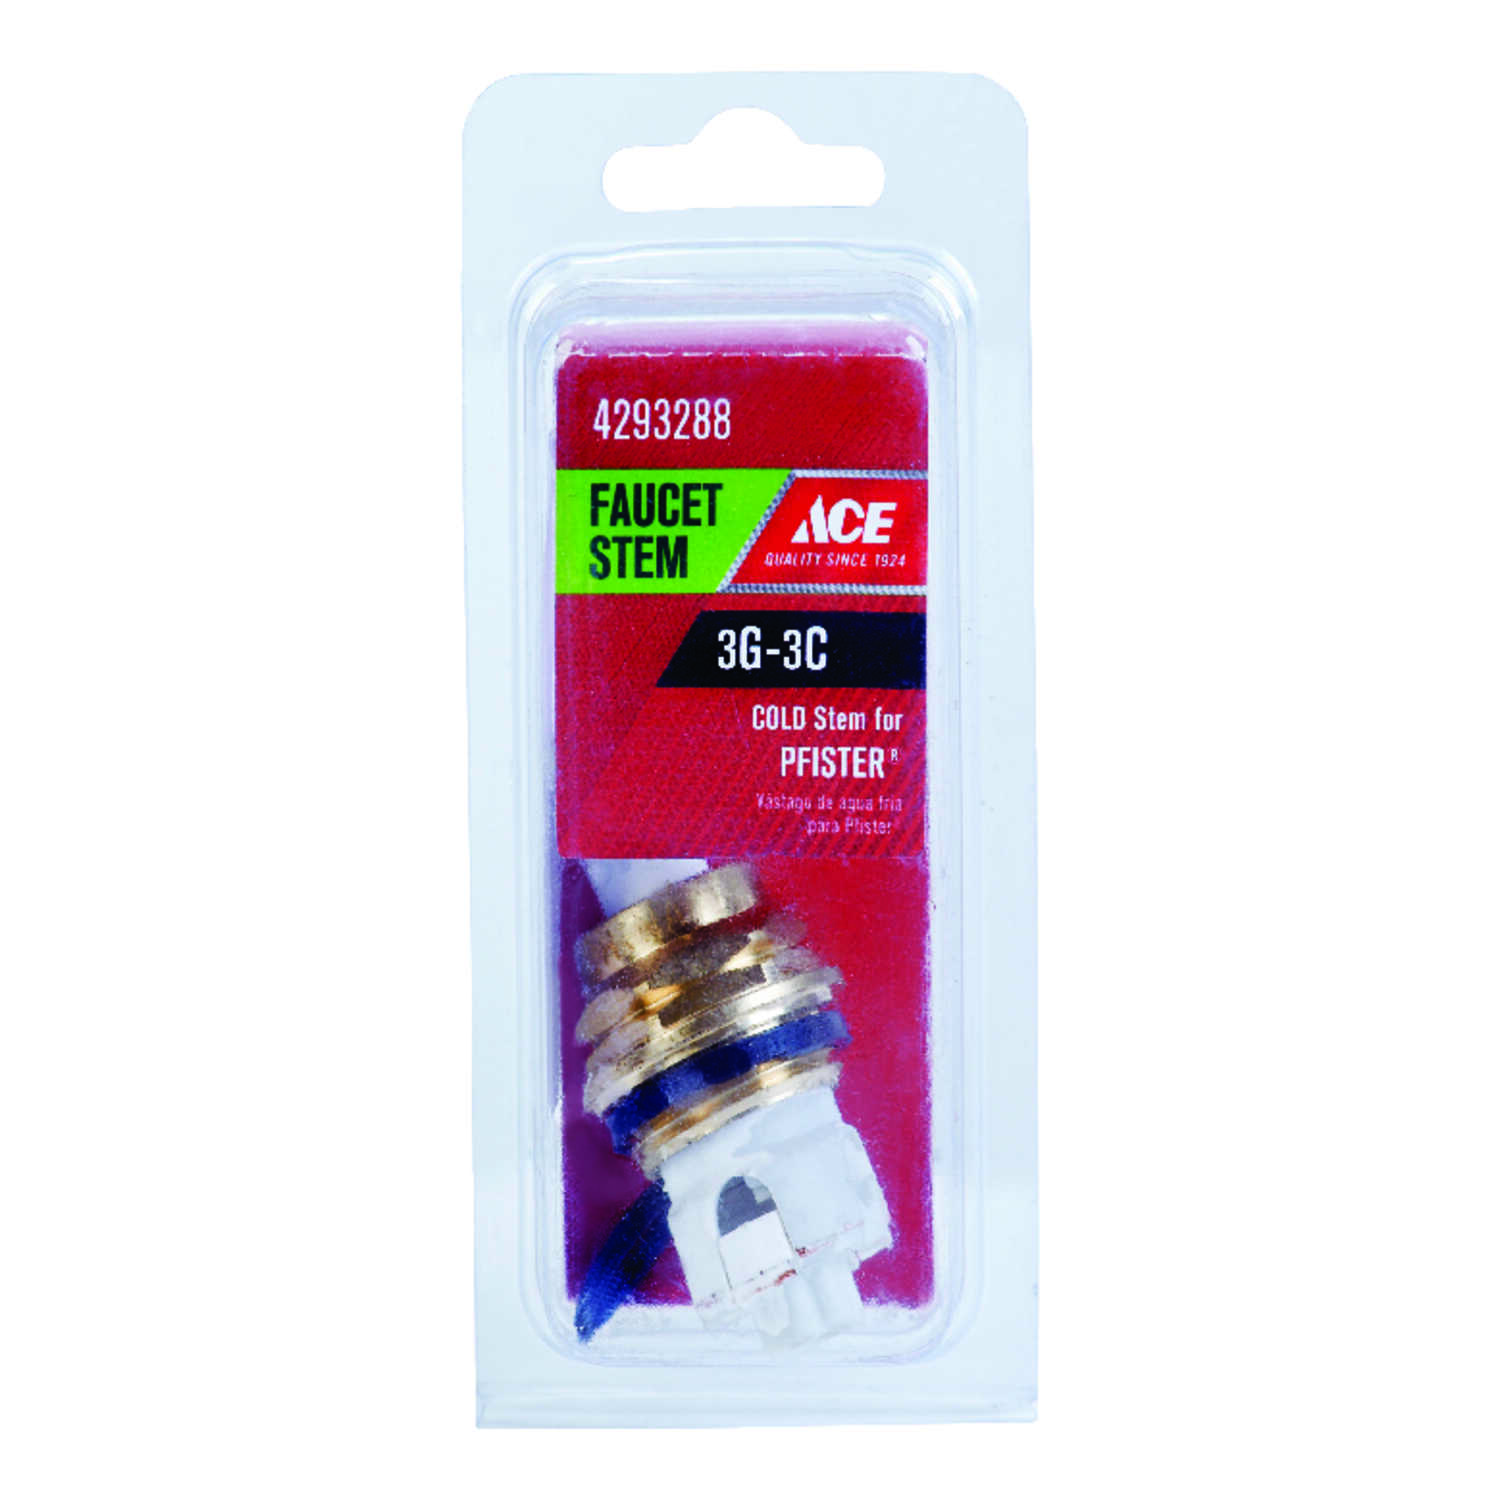 Ace  Cold  3G-3C  Faucet Stem  For Price Pfister